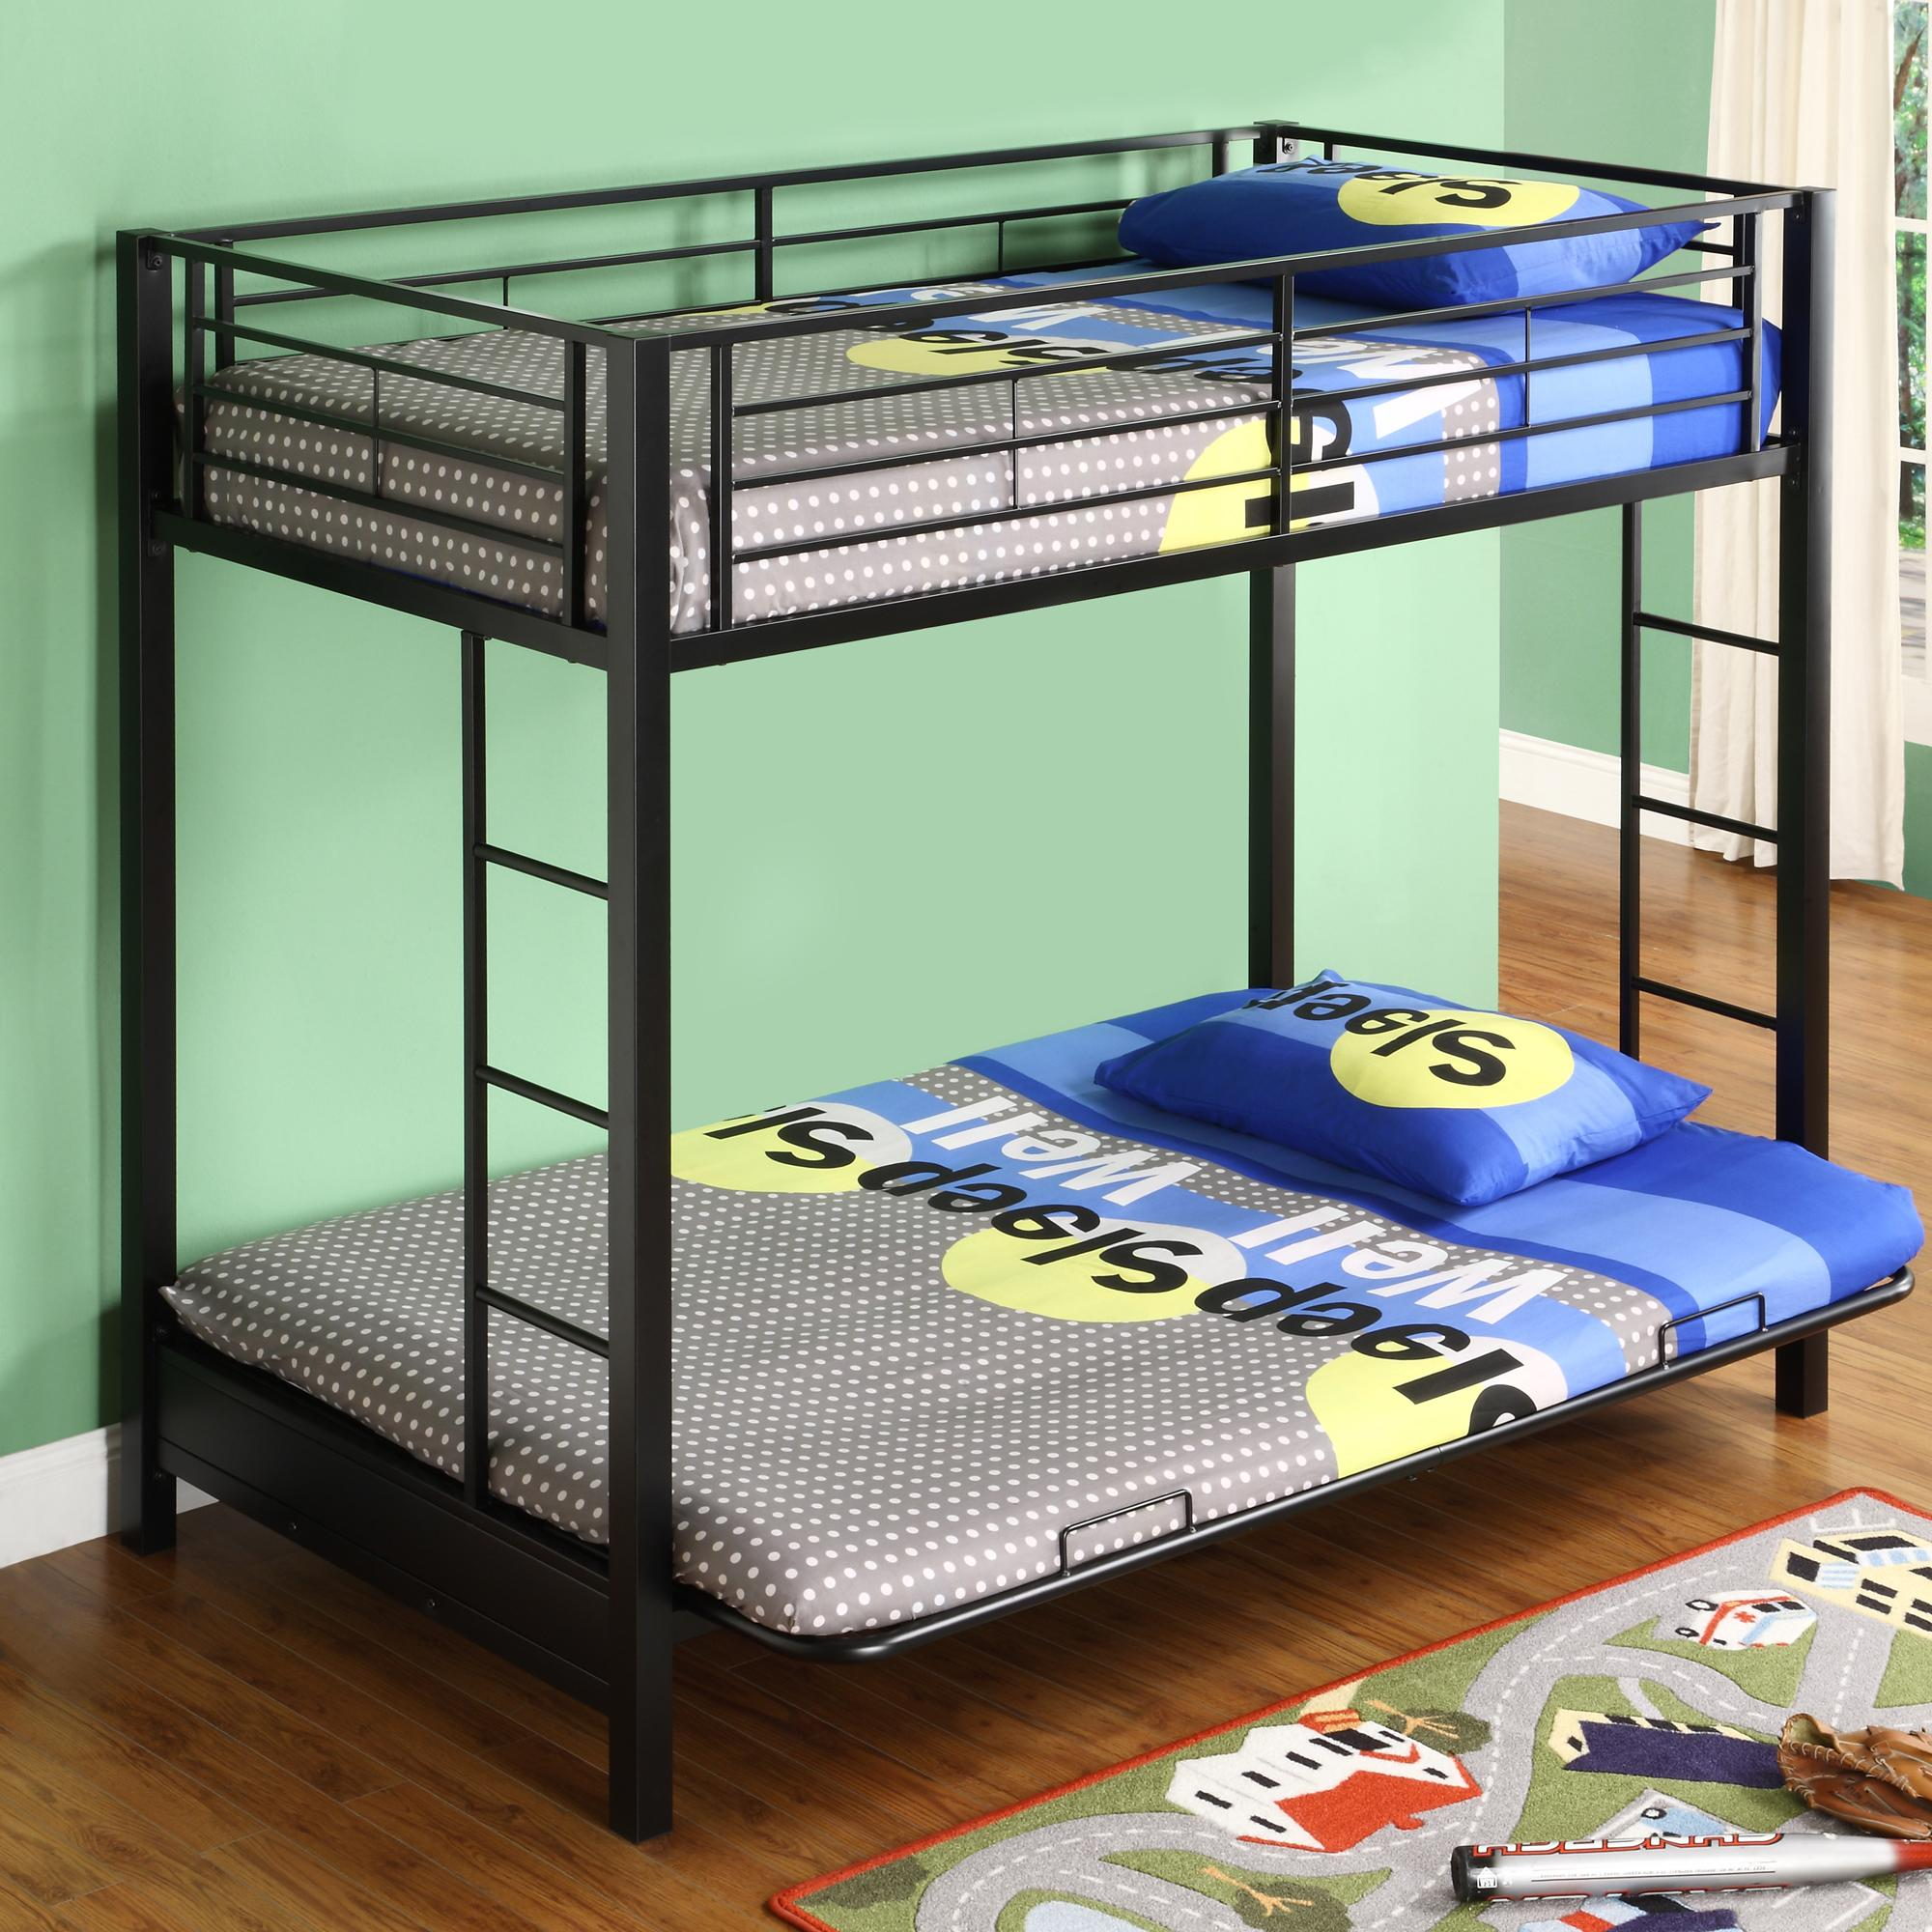 View larger for Bunk bed frame